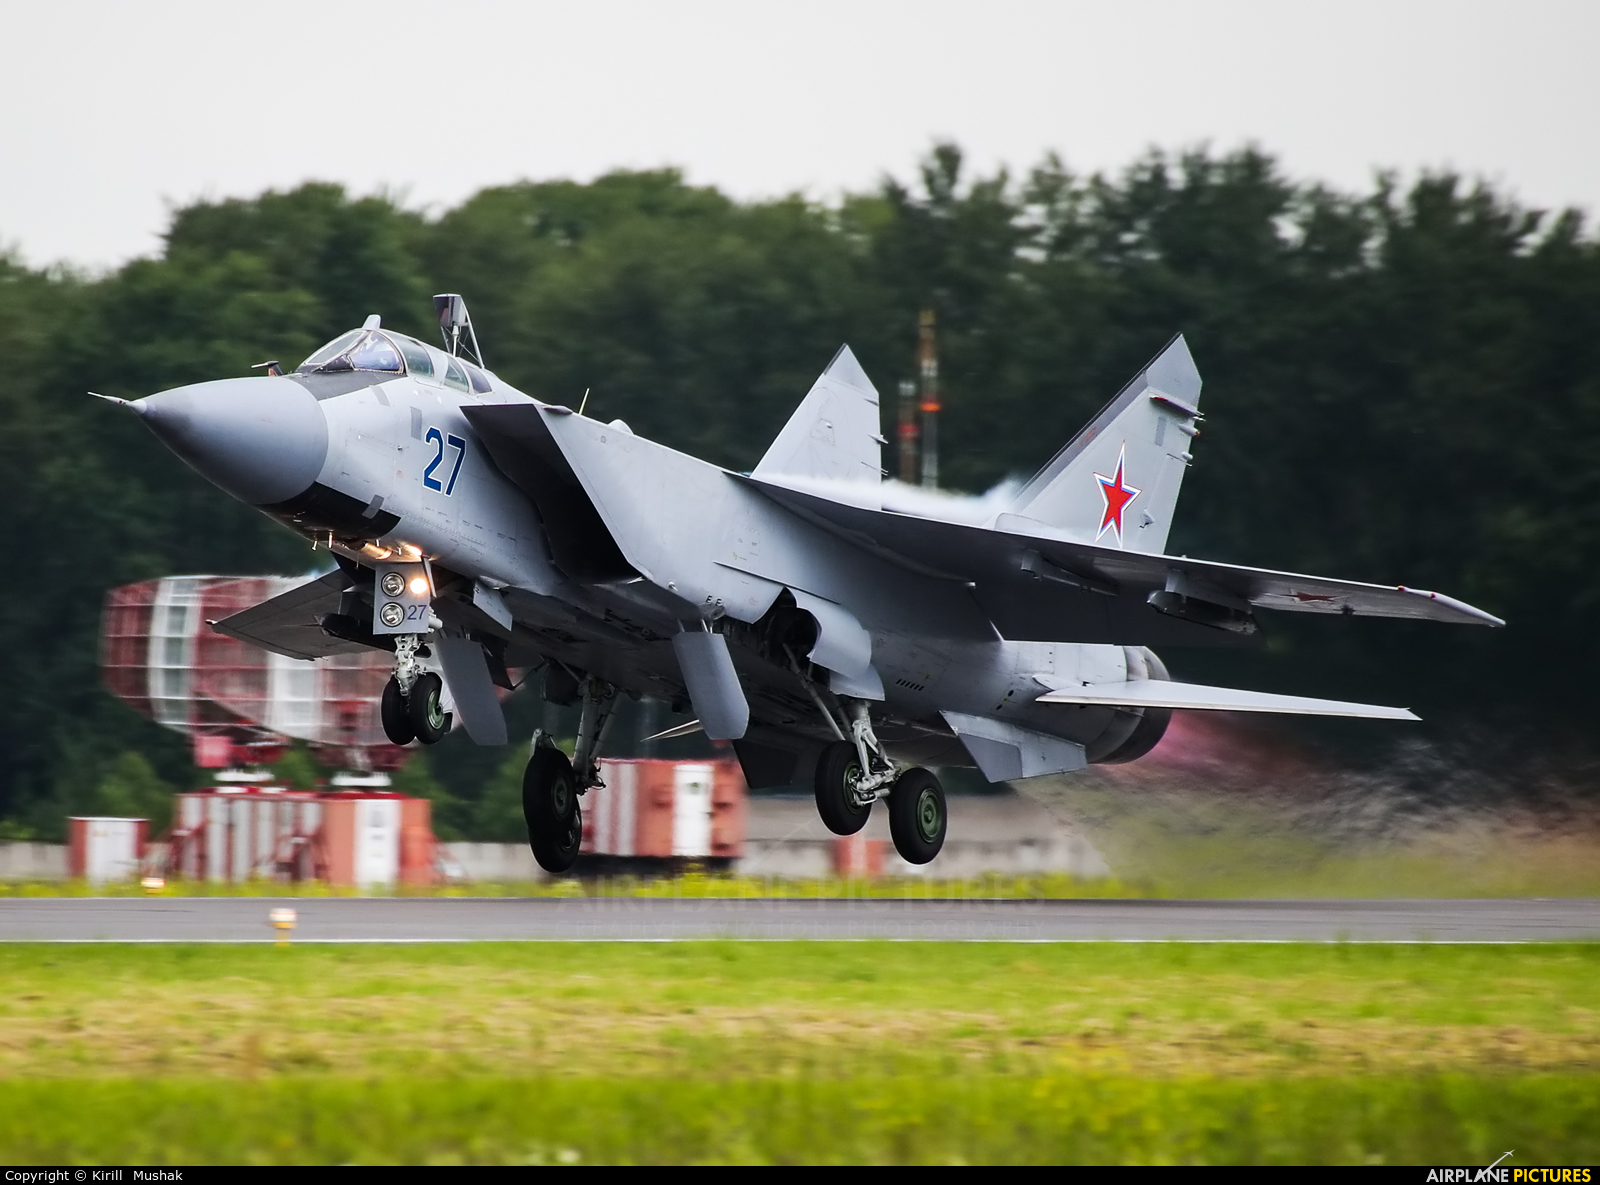 Russia - Air Force 27 BLUE aircraft at Undisclosed Location